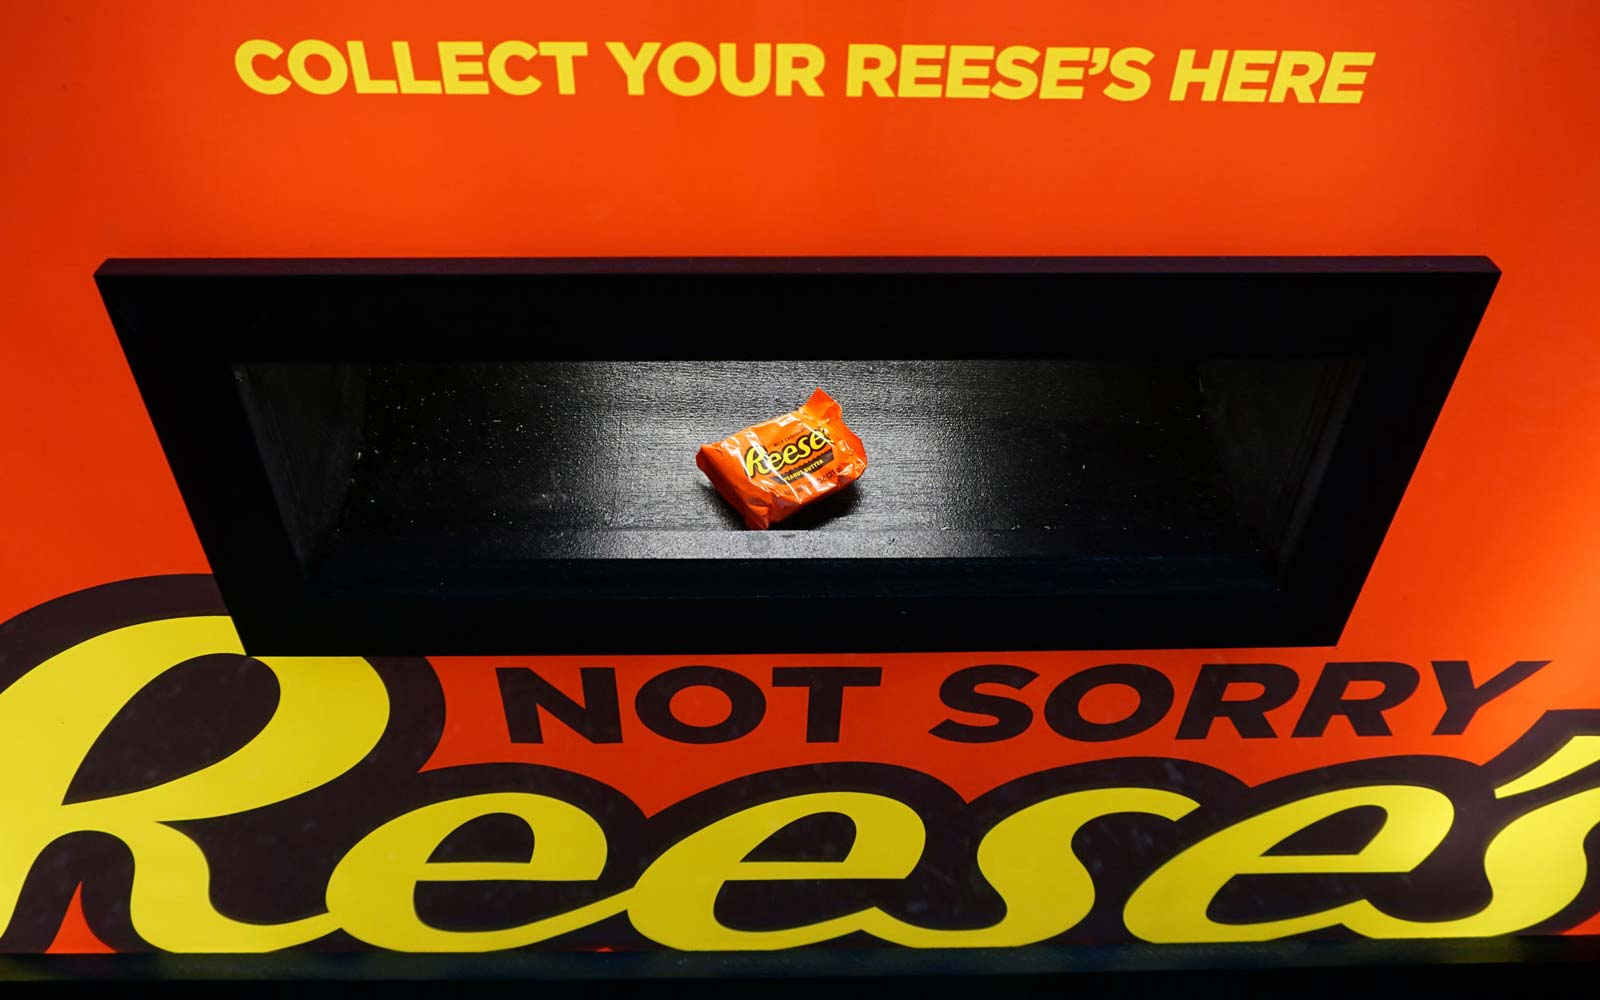 This Vending Machine Will Let You Trade Your Unwanted Halloween Candy for Reese's (Video)